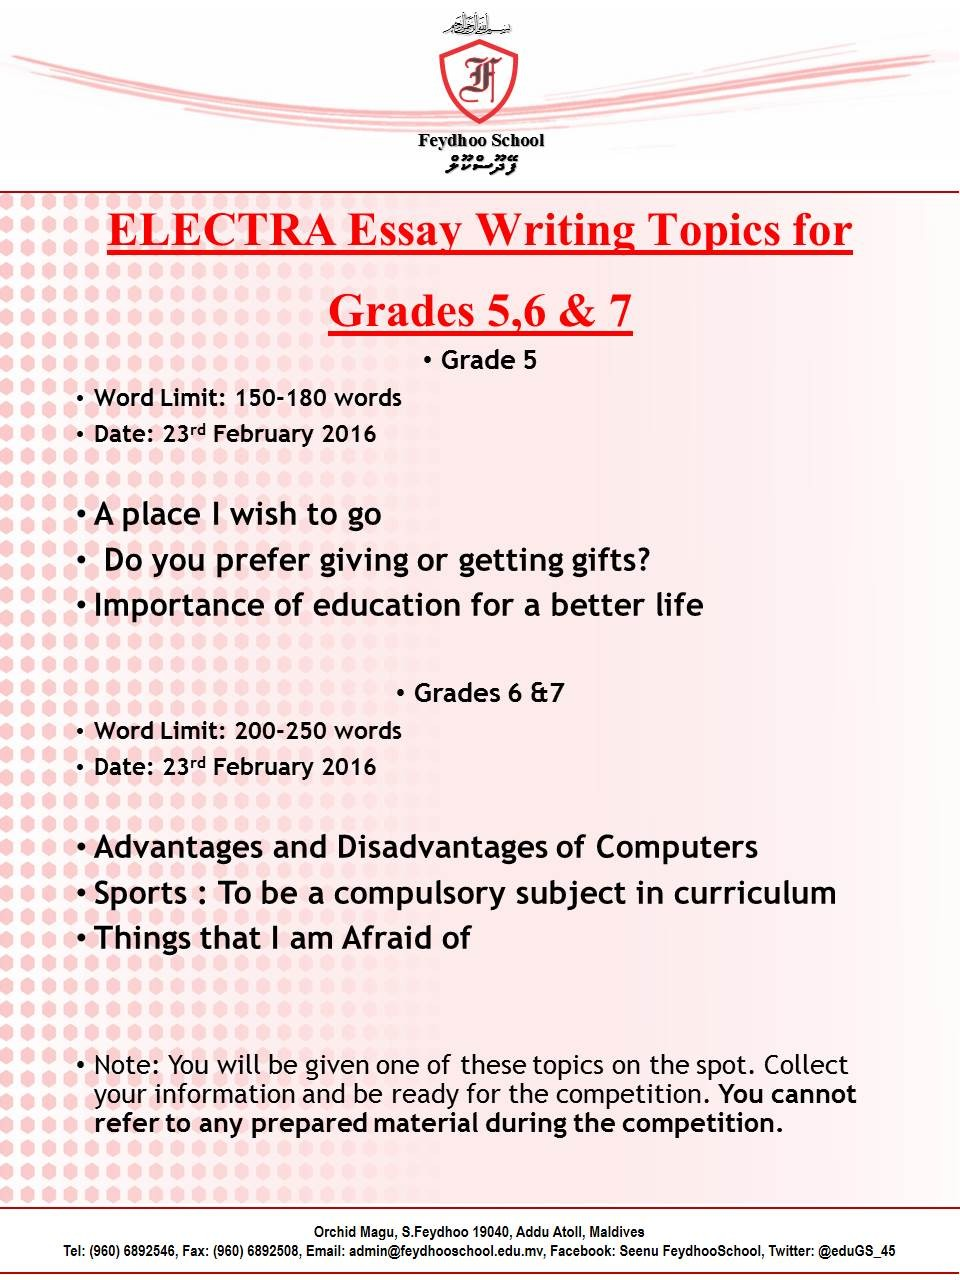 003 Essay Example Topics For Grade Marvelous 5 Informative 5th Icse Writing Students 960